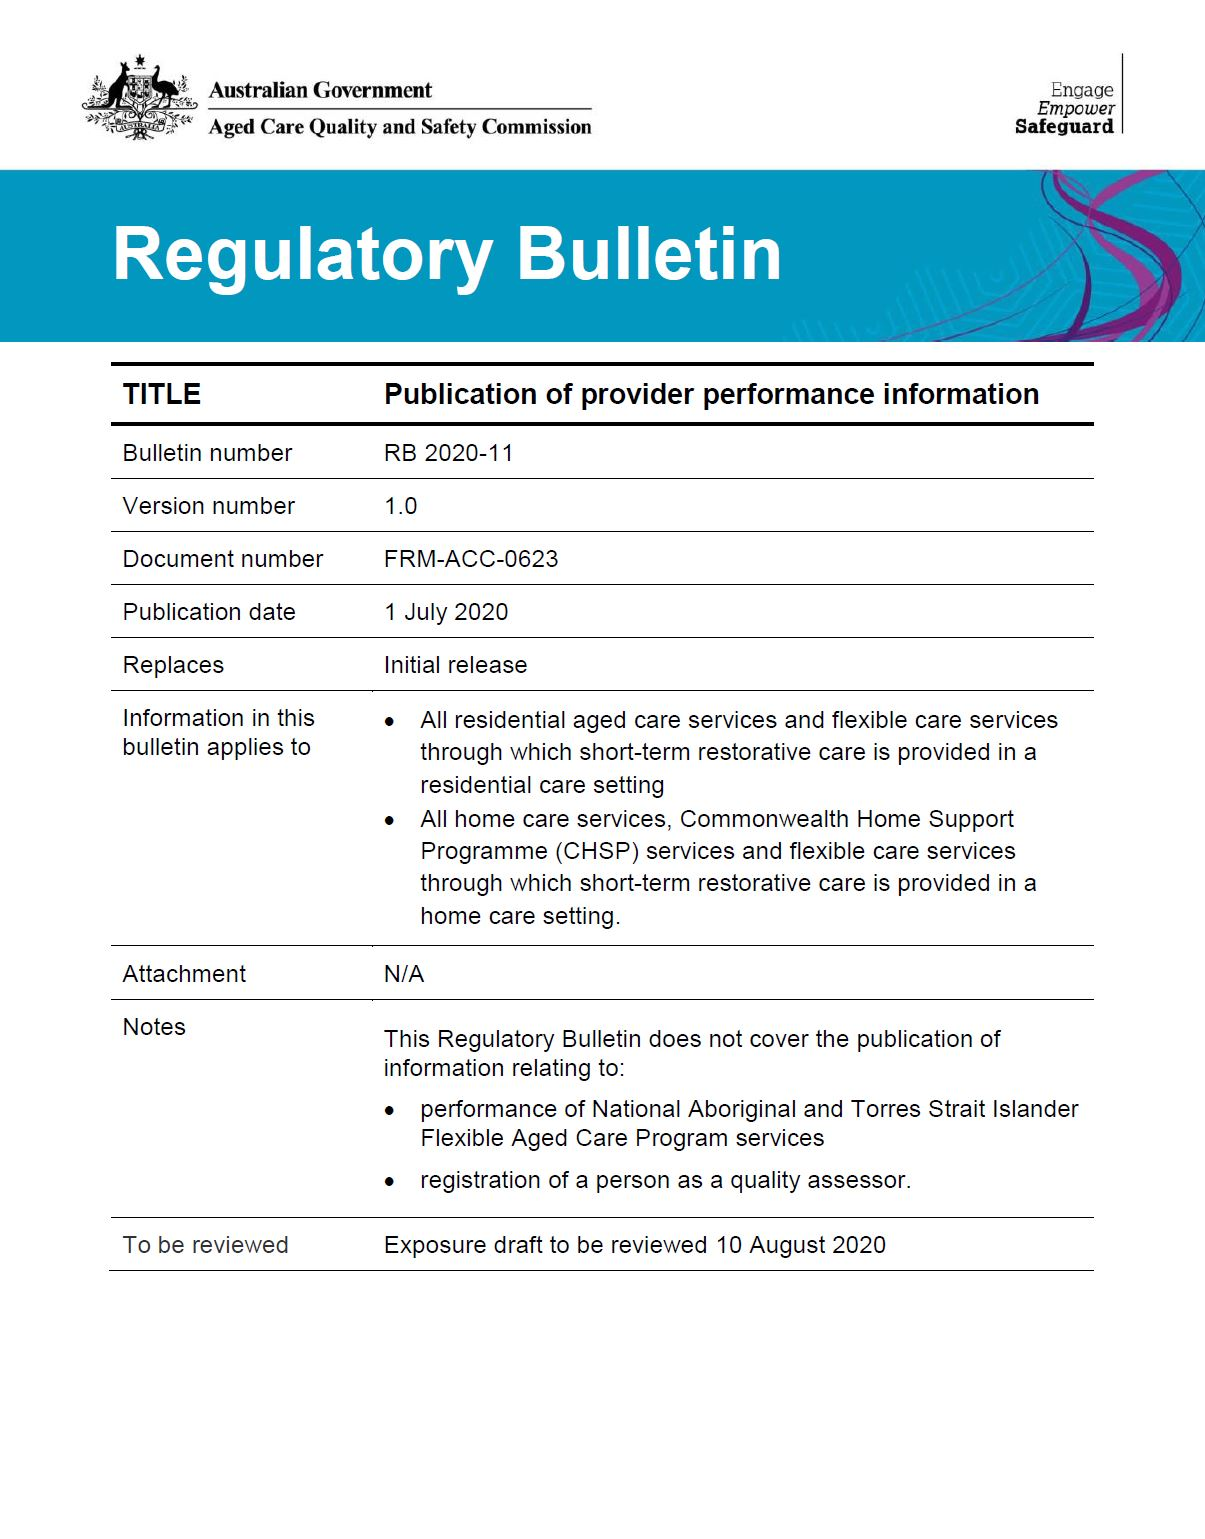 RB 2020-11 Publication of provider performance information cover image